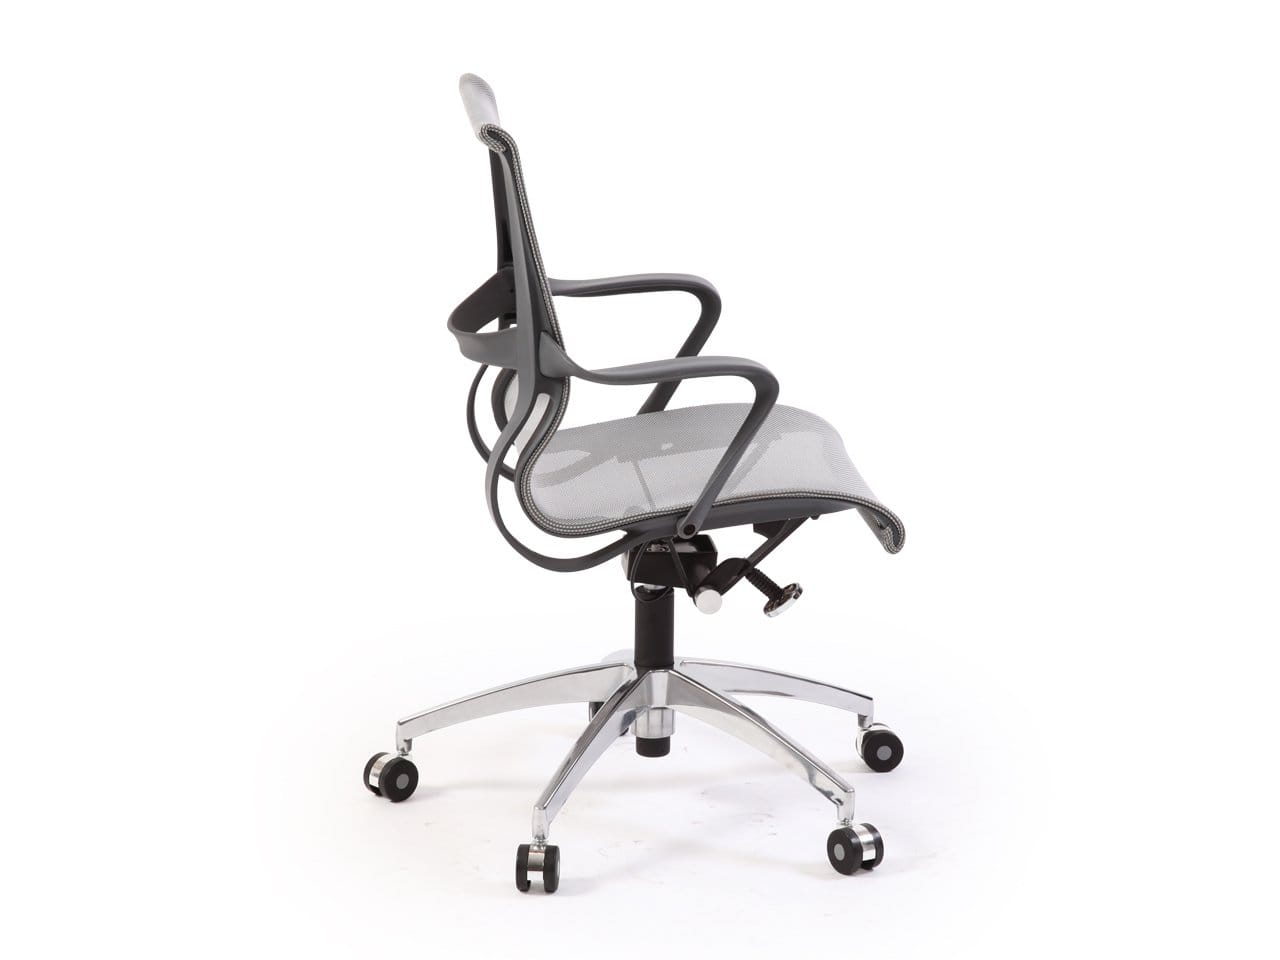 best back support for office chair singapore vibrating massage azura comfort design the and table people